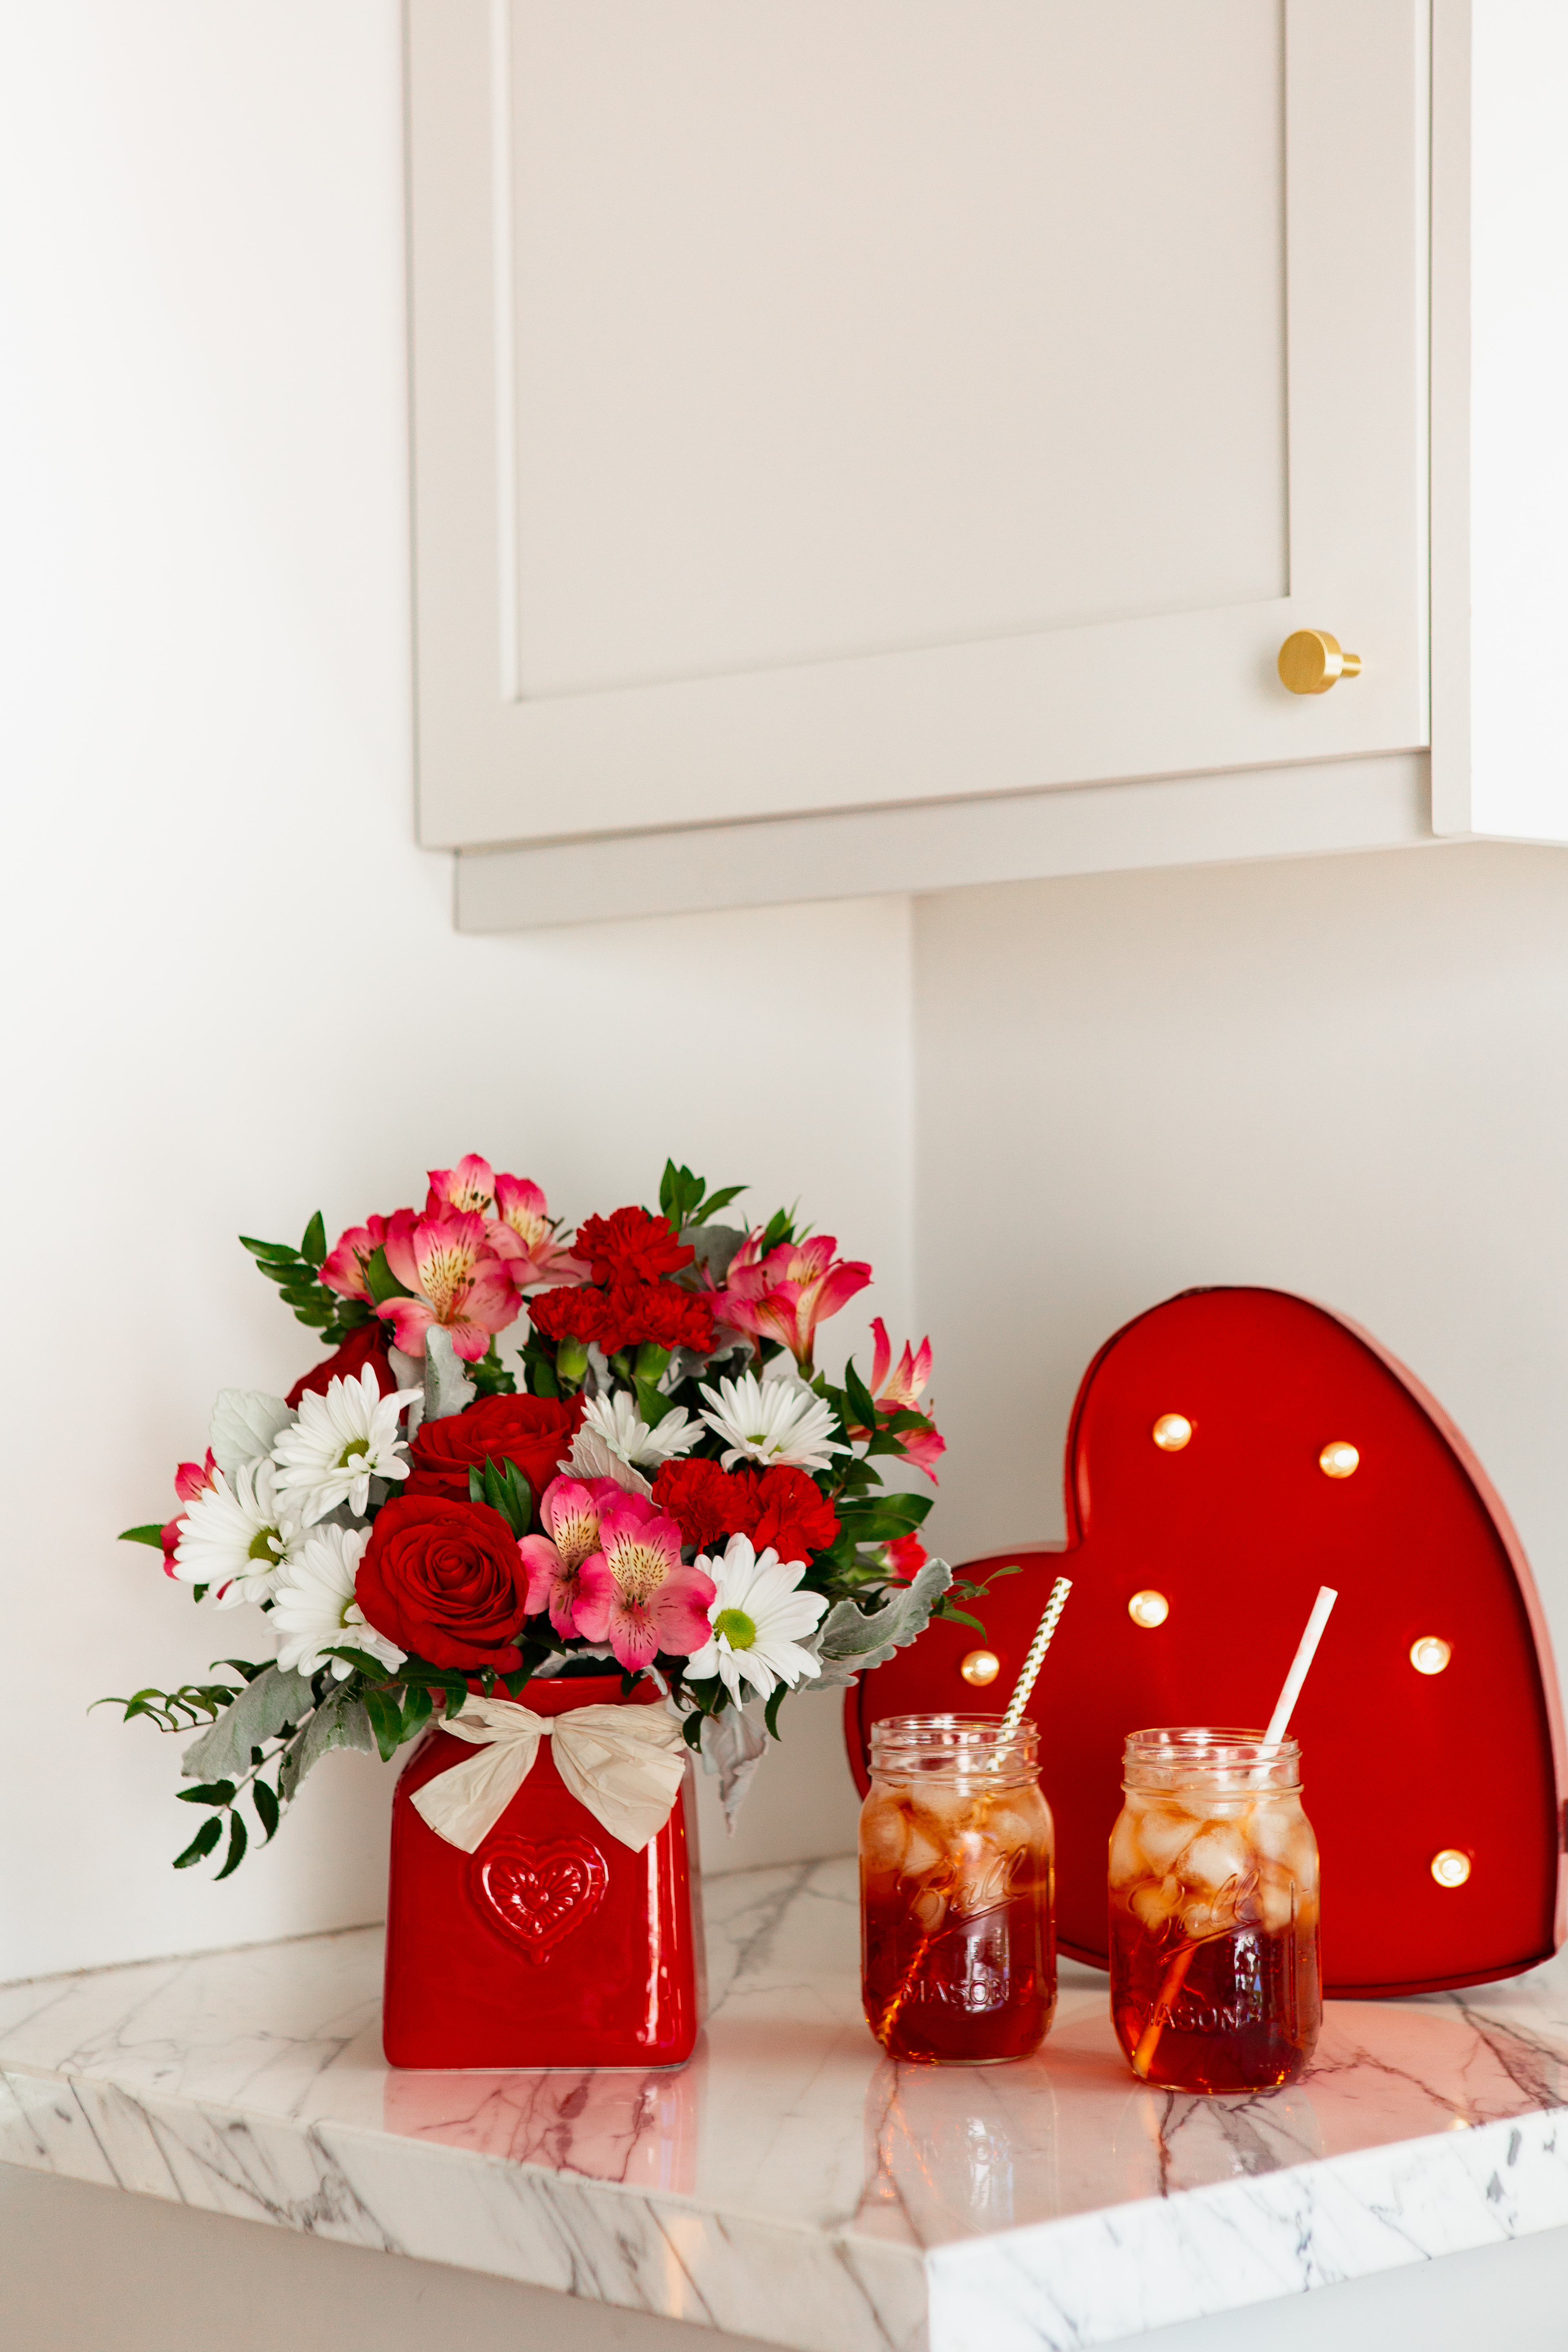 Red and pink flowers in pink crock vase next to ice tea glasses and a red heart